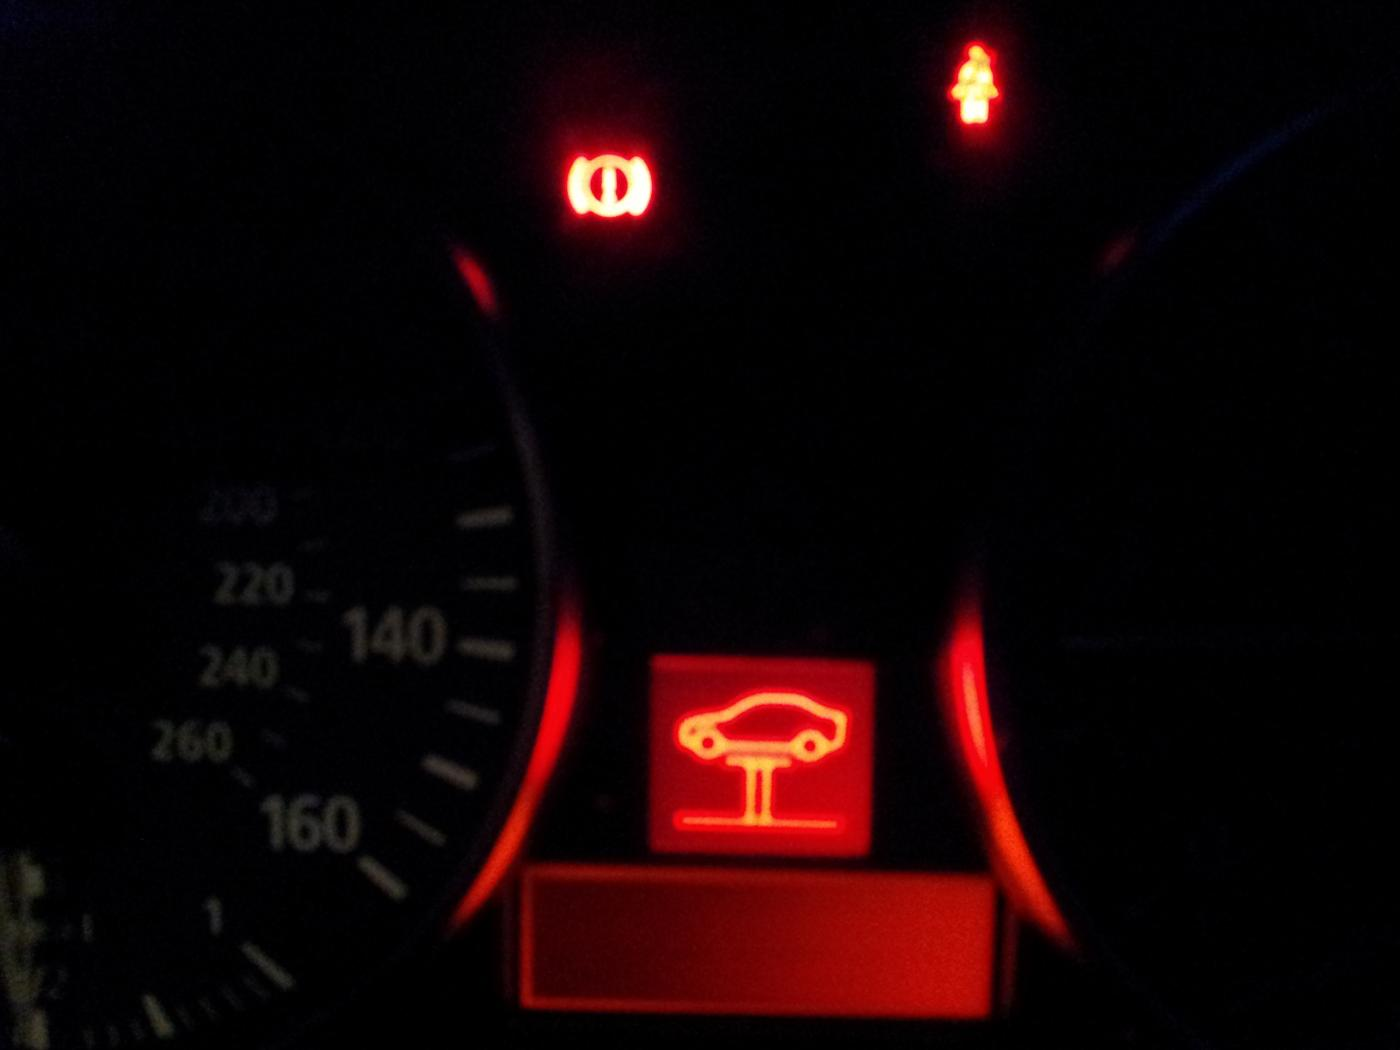 Red Warning Lights In Dash Not Sure What It Means Pls Help